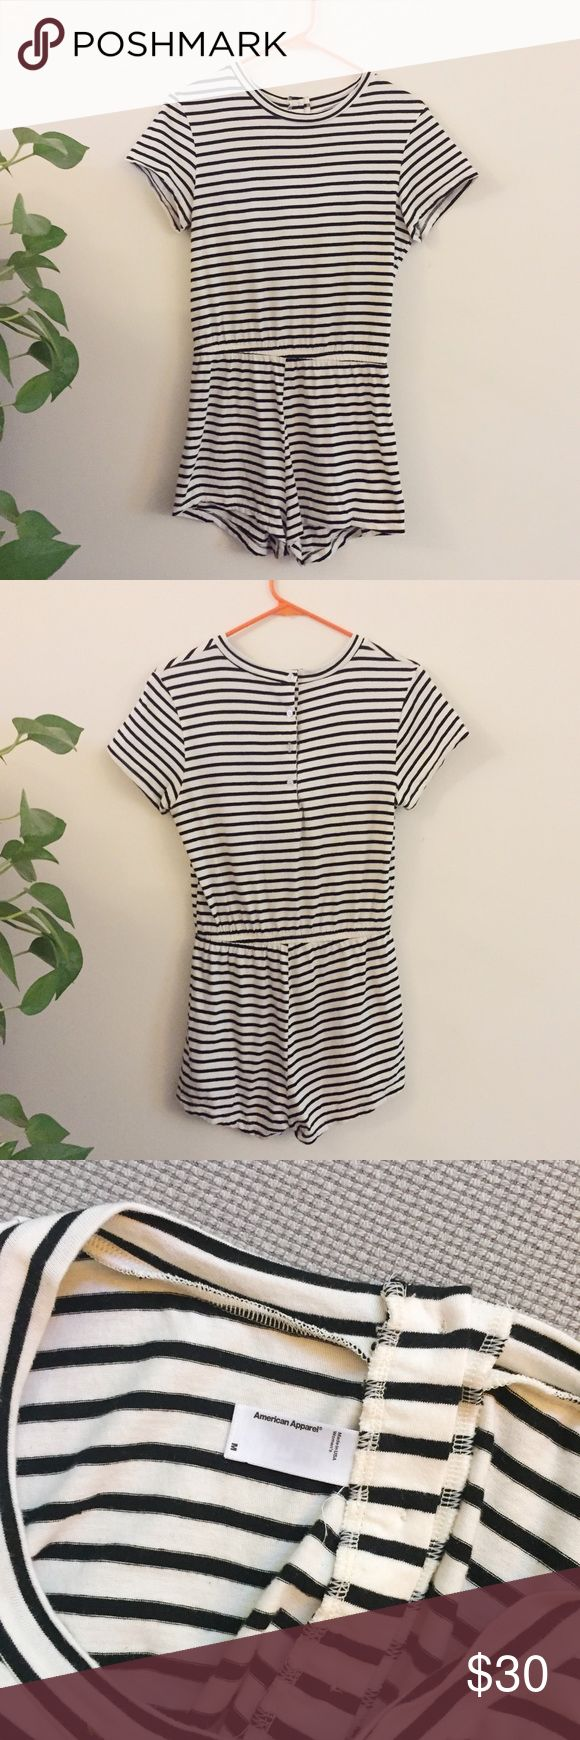 American Apparel Striped T-shirt Romper Super soft and comfy black & white striped t-shirt romper from American Apparel. Size M, but runs small. Fastens with buttons on the back. Worn once, like new condition! American Apparel Shorts